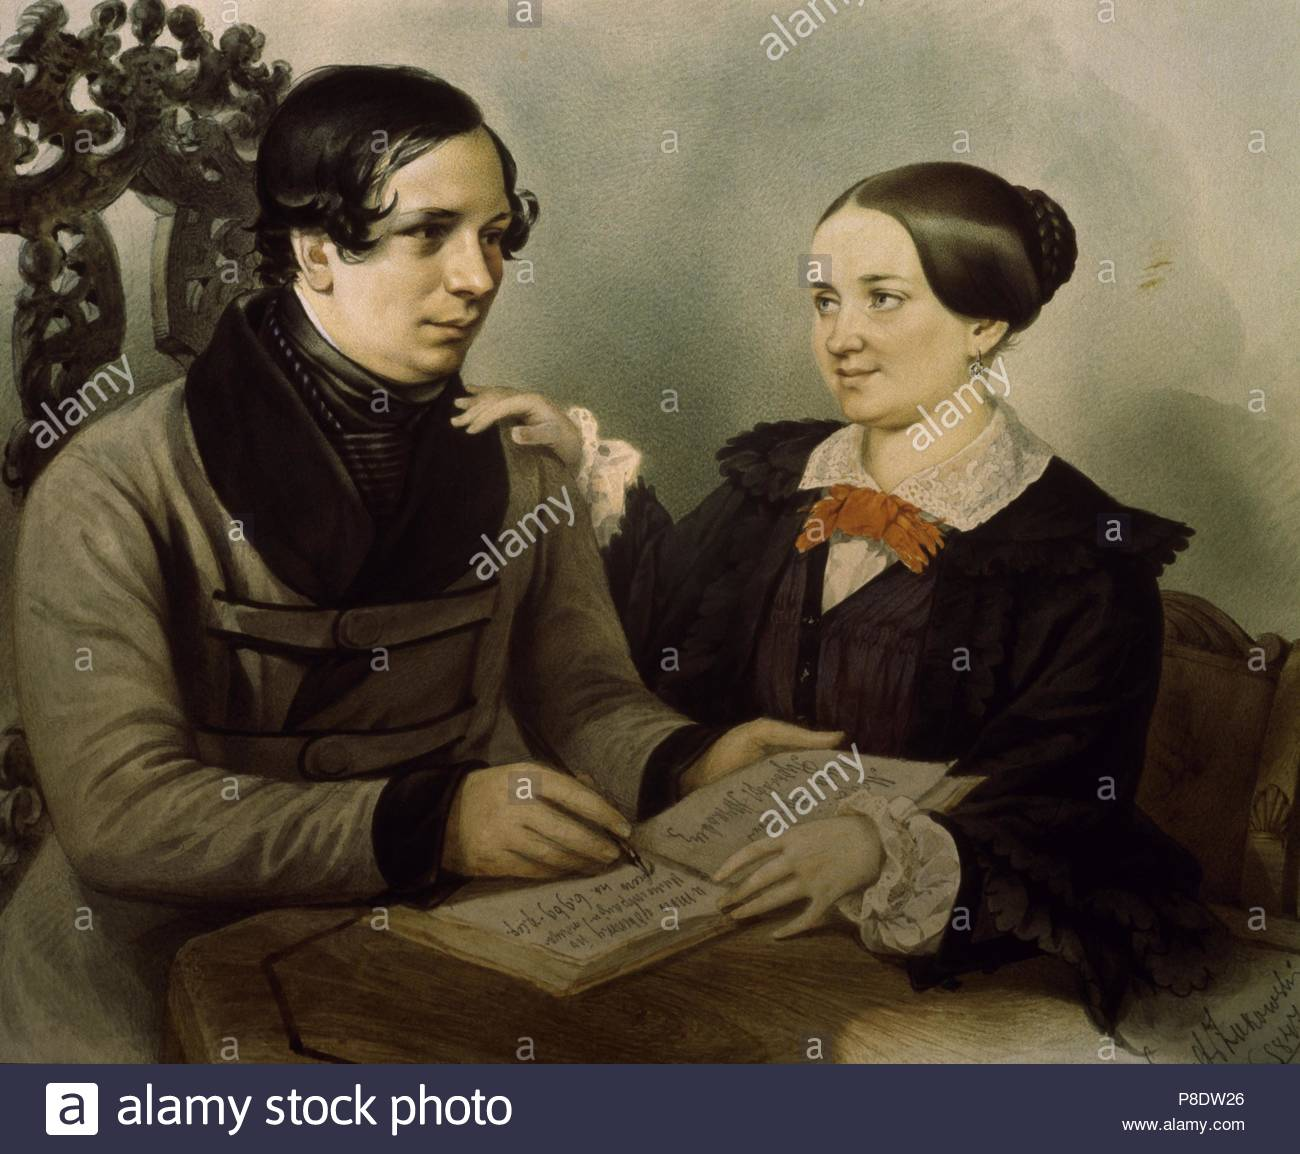 Portrait of the author Nestor Kukolnik (1809-1868) with his wife. Museum: State Russian Museum, St. Petersburg. - Stock Image